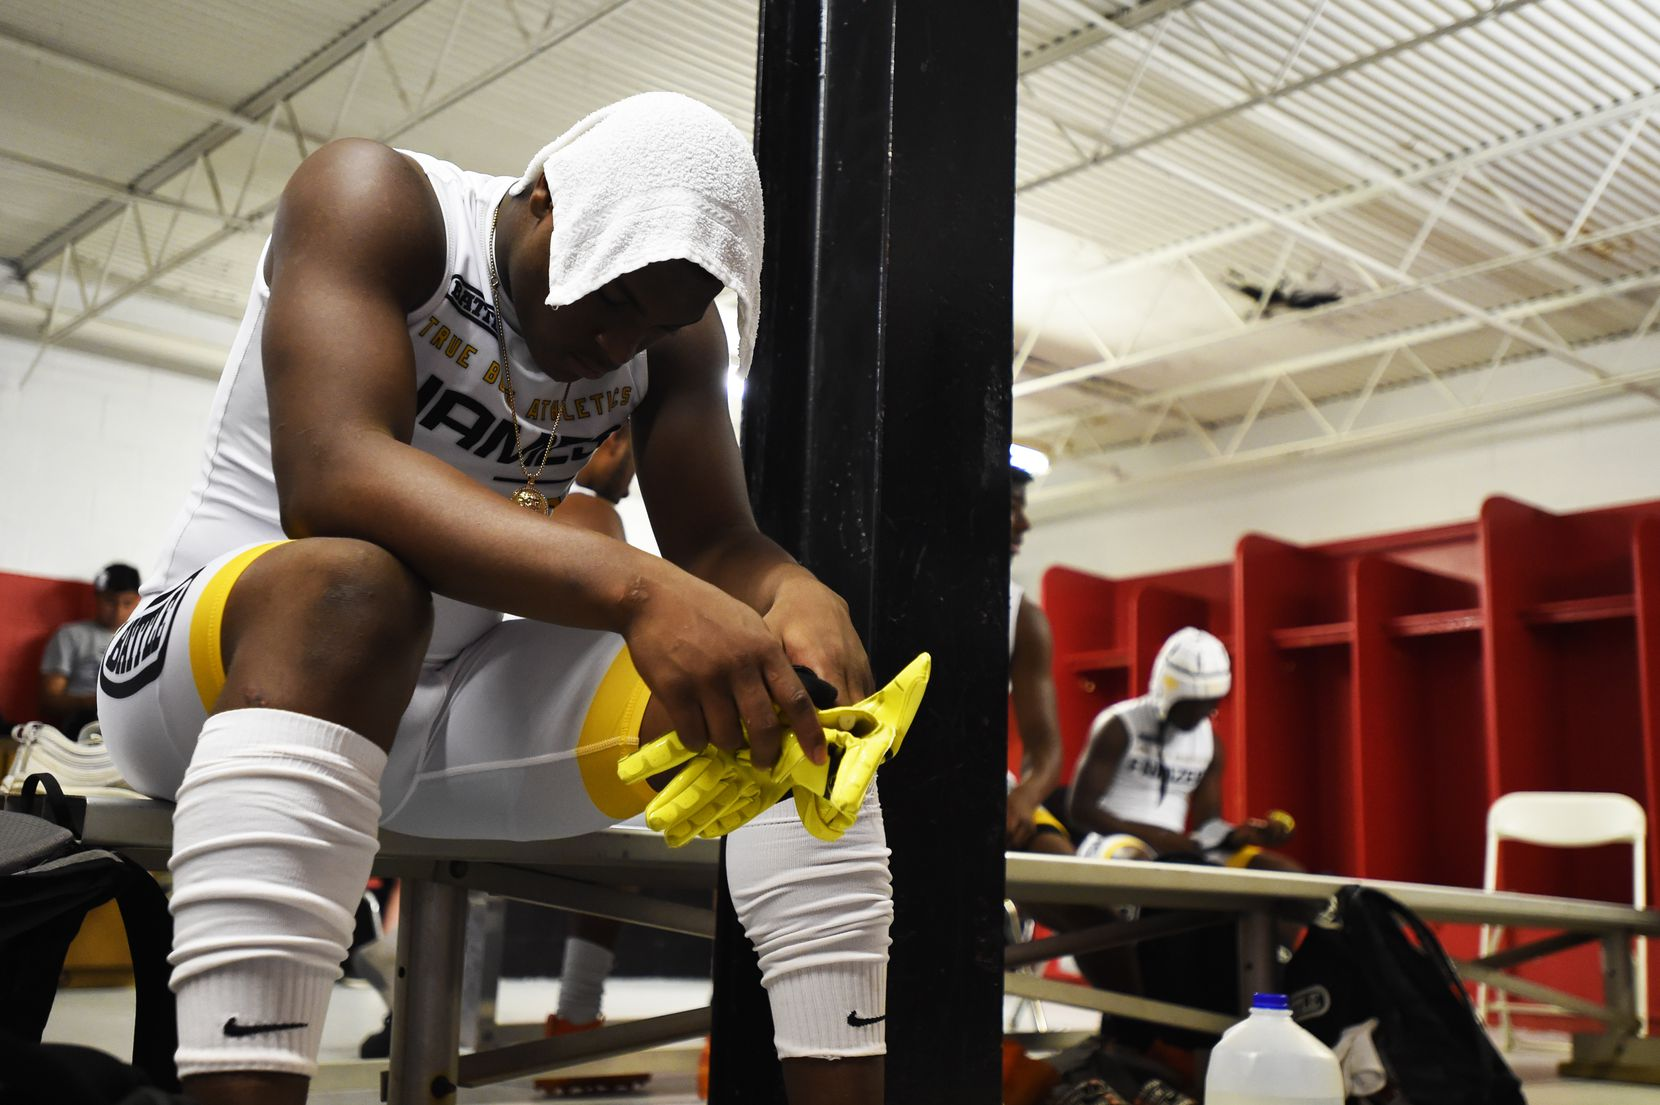 True Buzz' Savion Reed has a moment to himself in the locker room before the Pylon 7v7 National Championship event held at Woodward Academy in Atlanta, Georgia, on May 26, 2019.